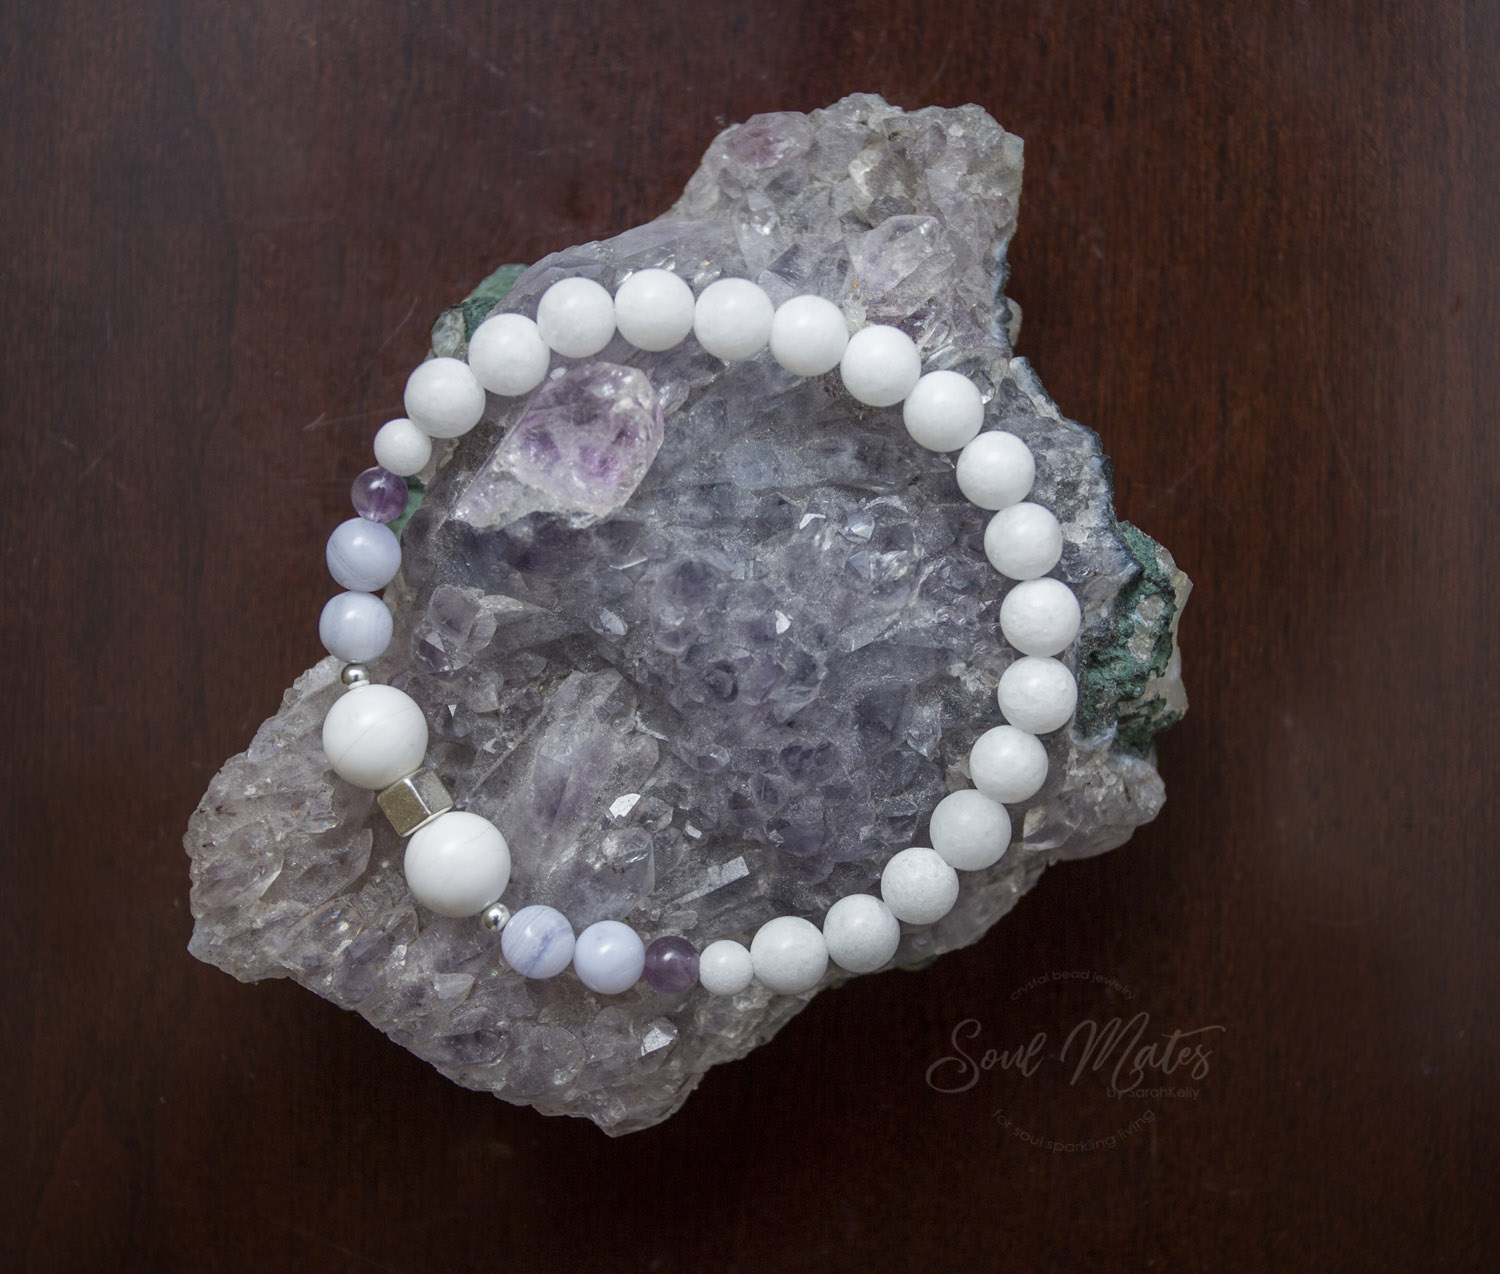 Calming  - Amethyst, Blue Lace Agate and White Jade make up this bracelet to calm the mind and emotions for stress relief during the day or for preparing for a restful night's sleep.  $22